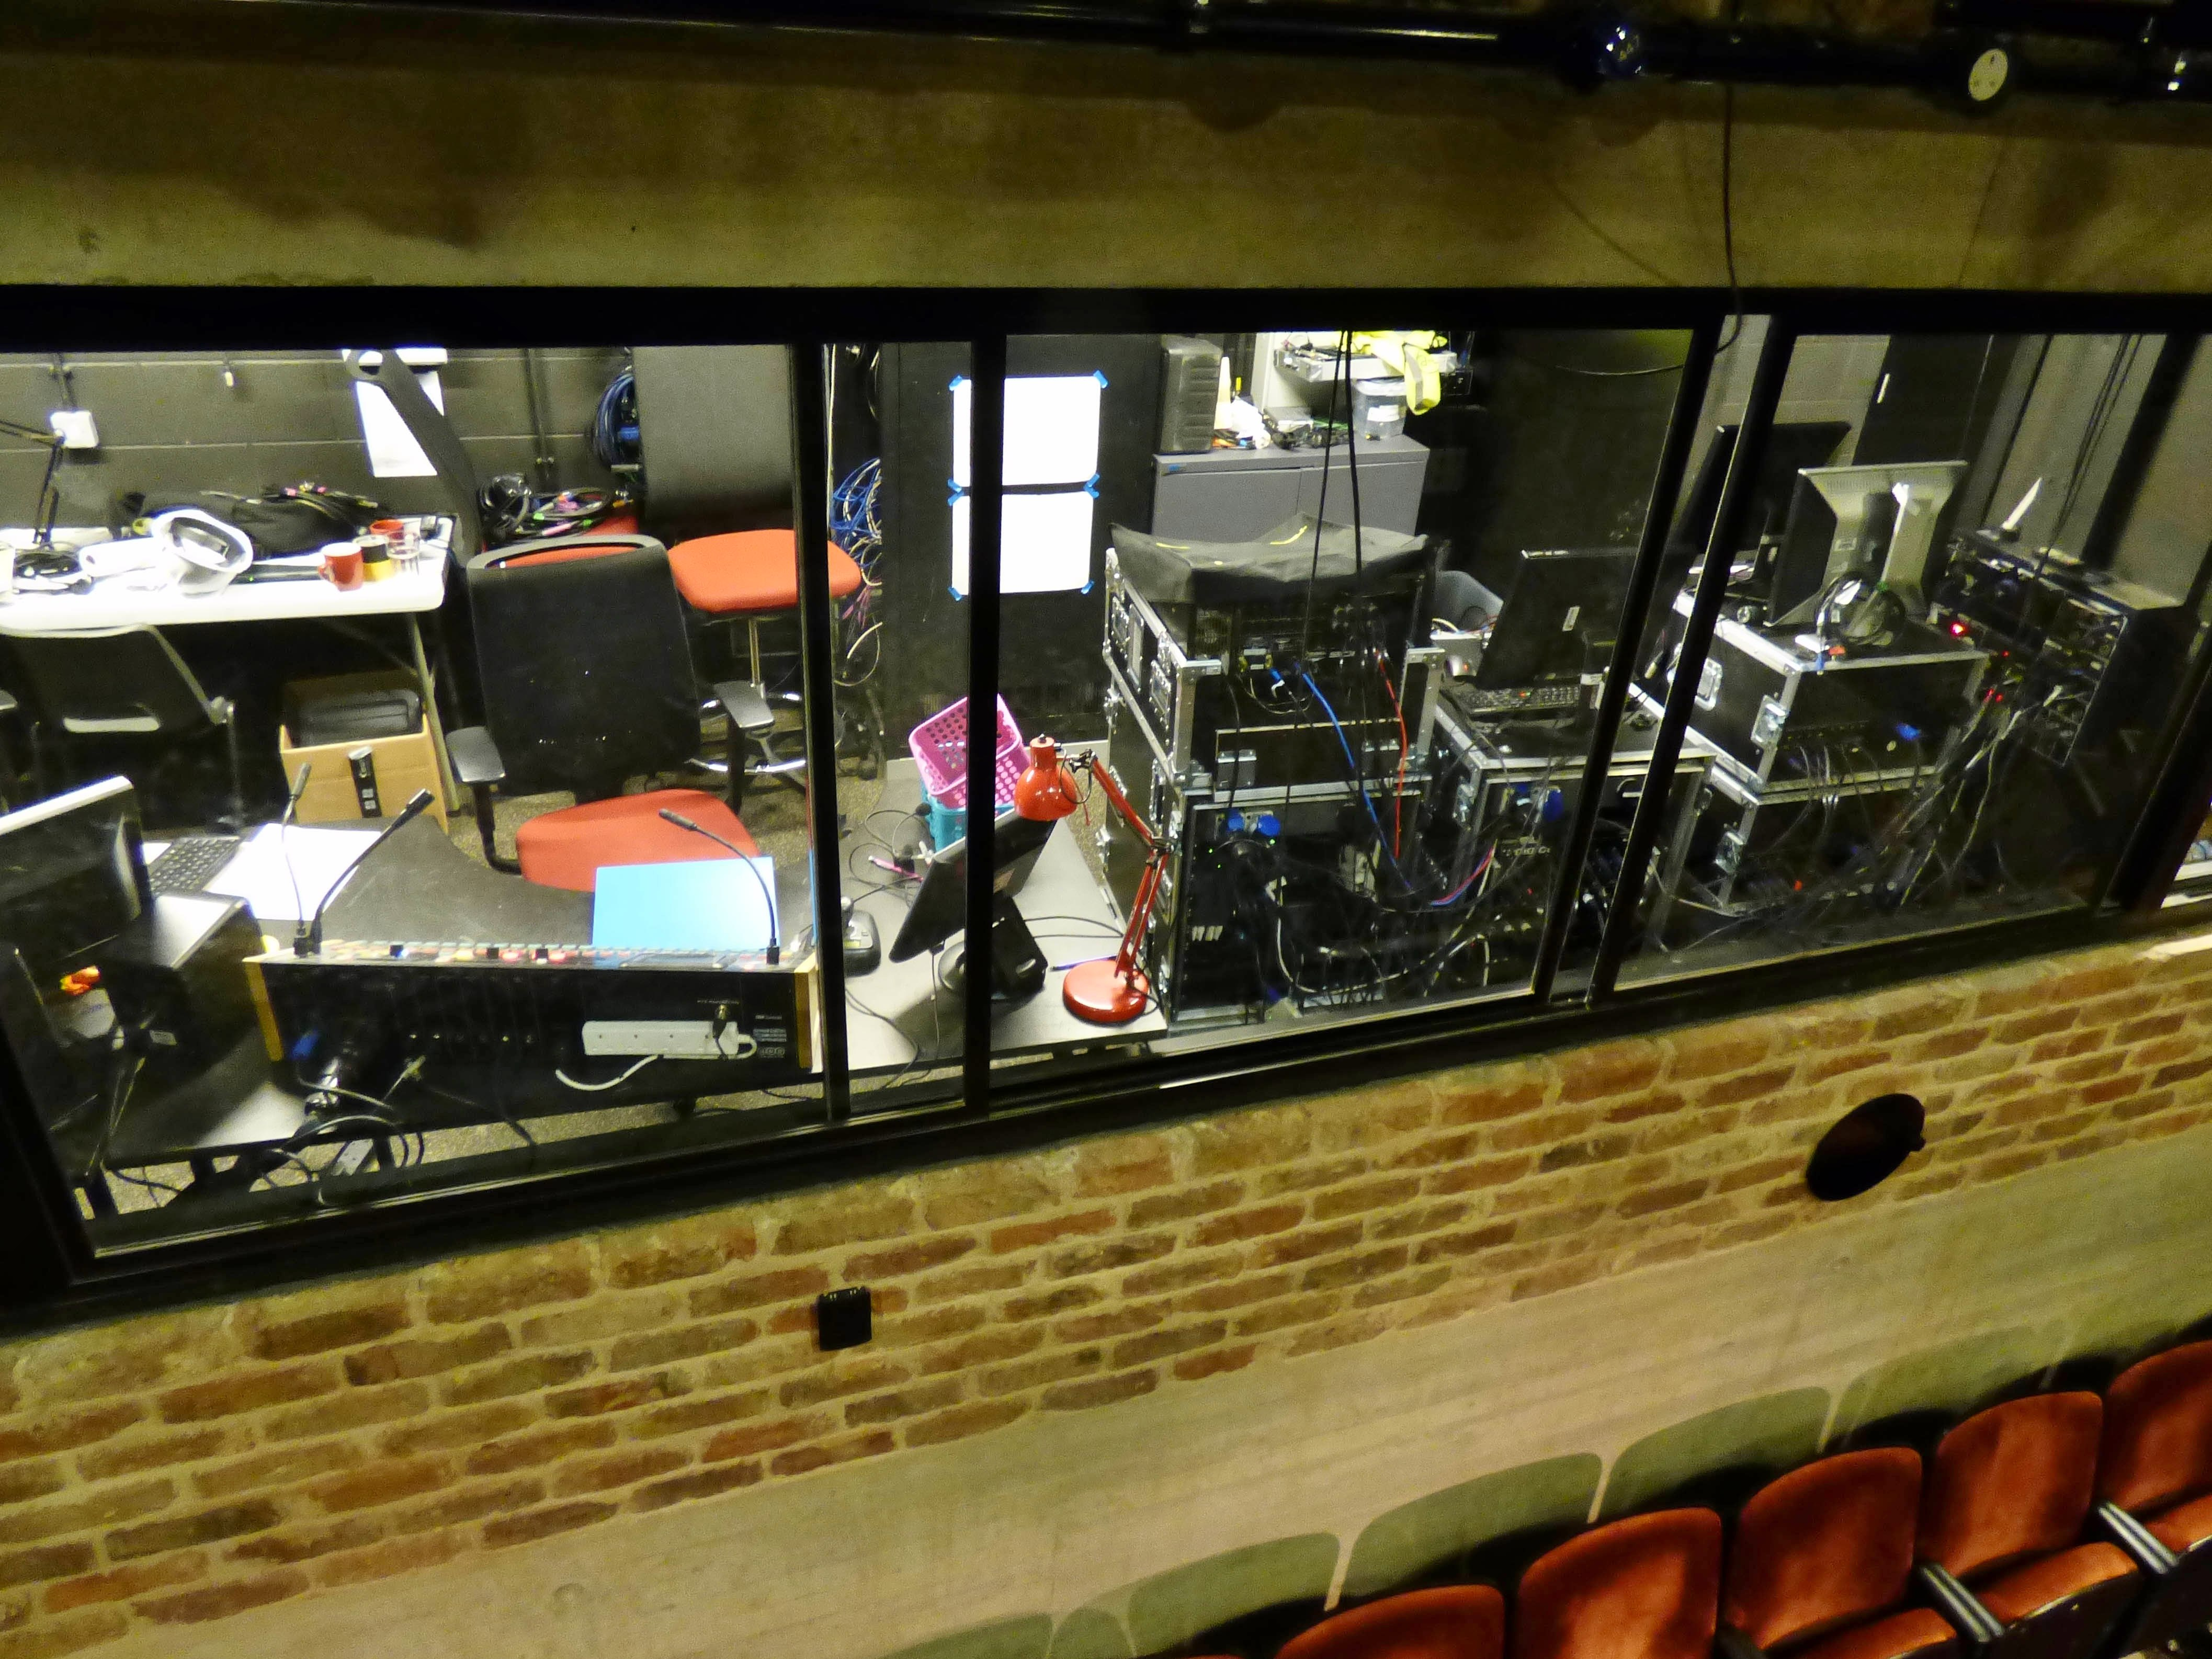 This is where the sound and audio description happen above the stage area in Everyman Theatre, liverpool, July 2016